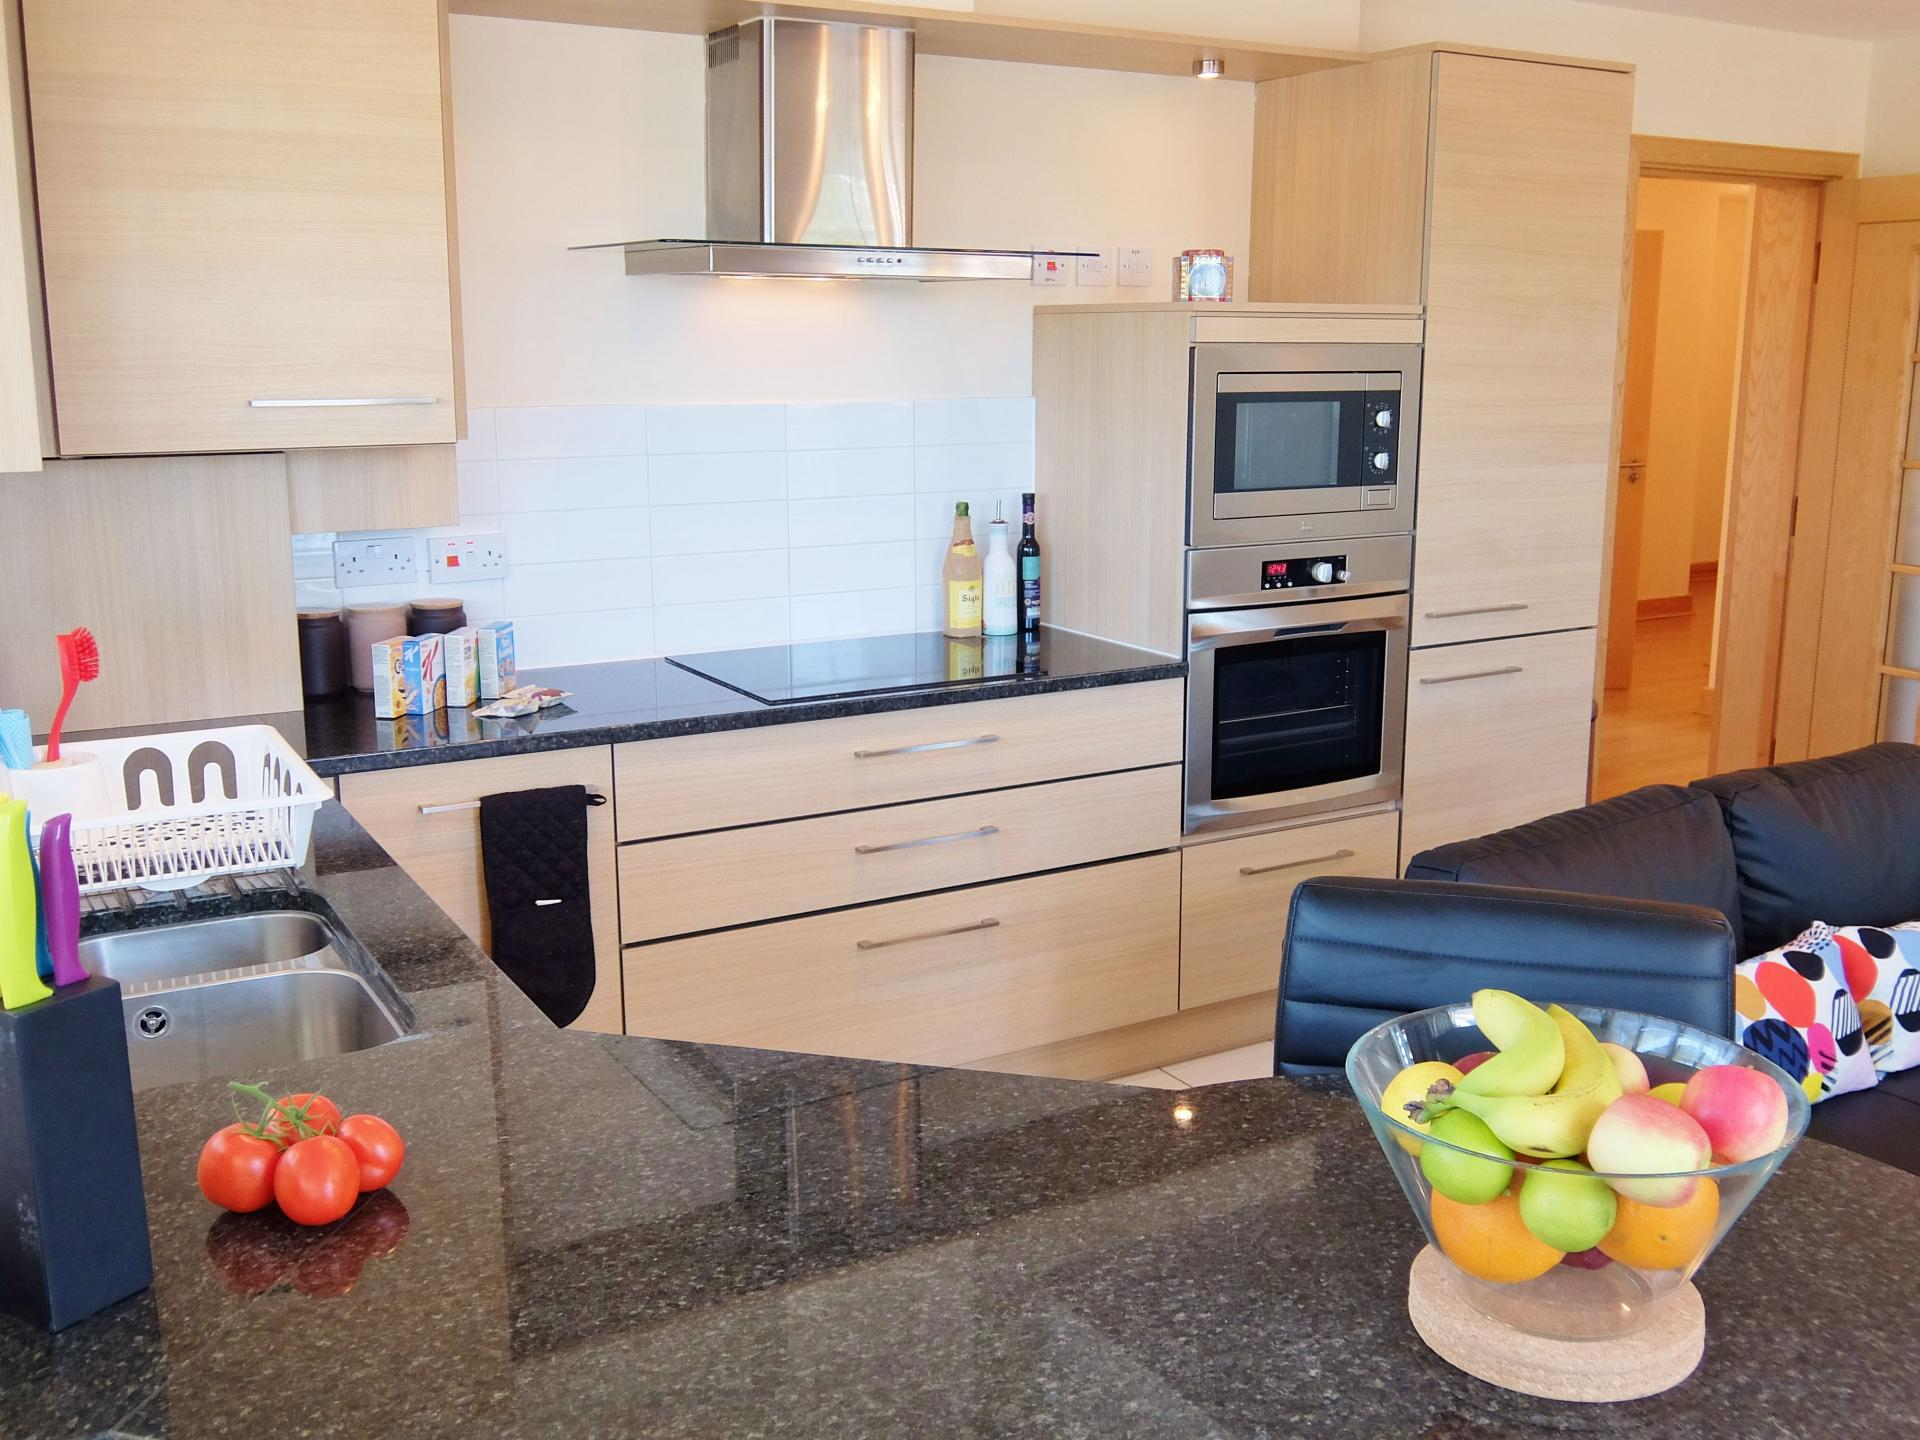 Kitchen at Hampton Court Creek Road Apartments, Hampton Court, London - Citybase Apartments